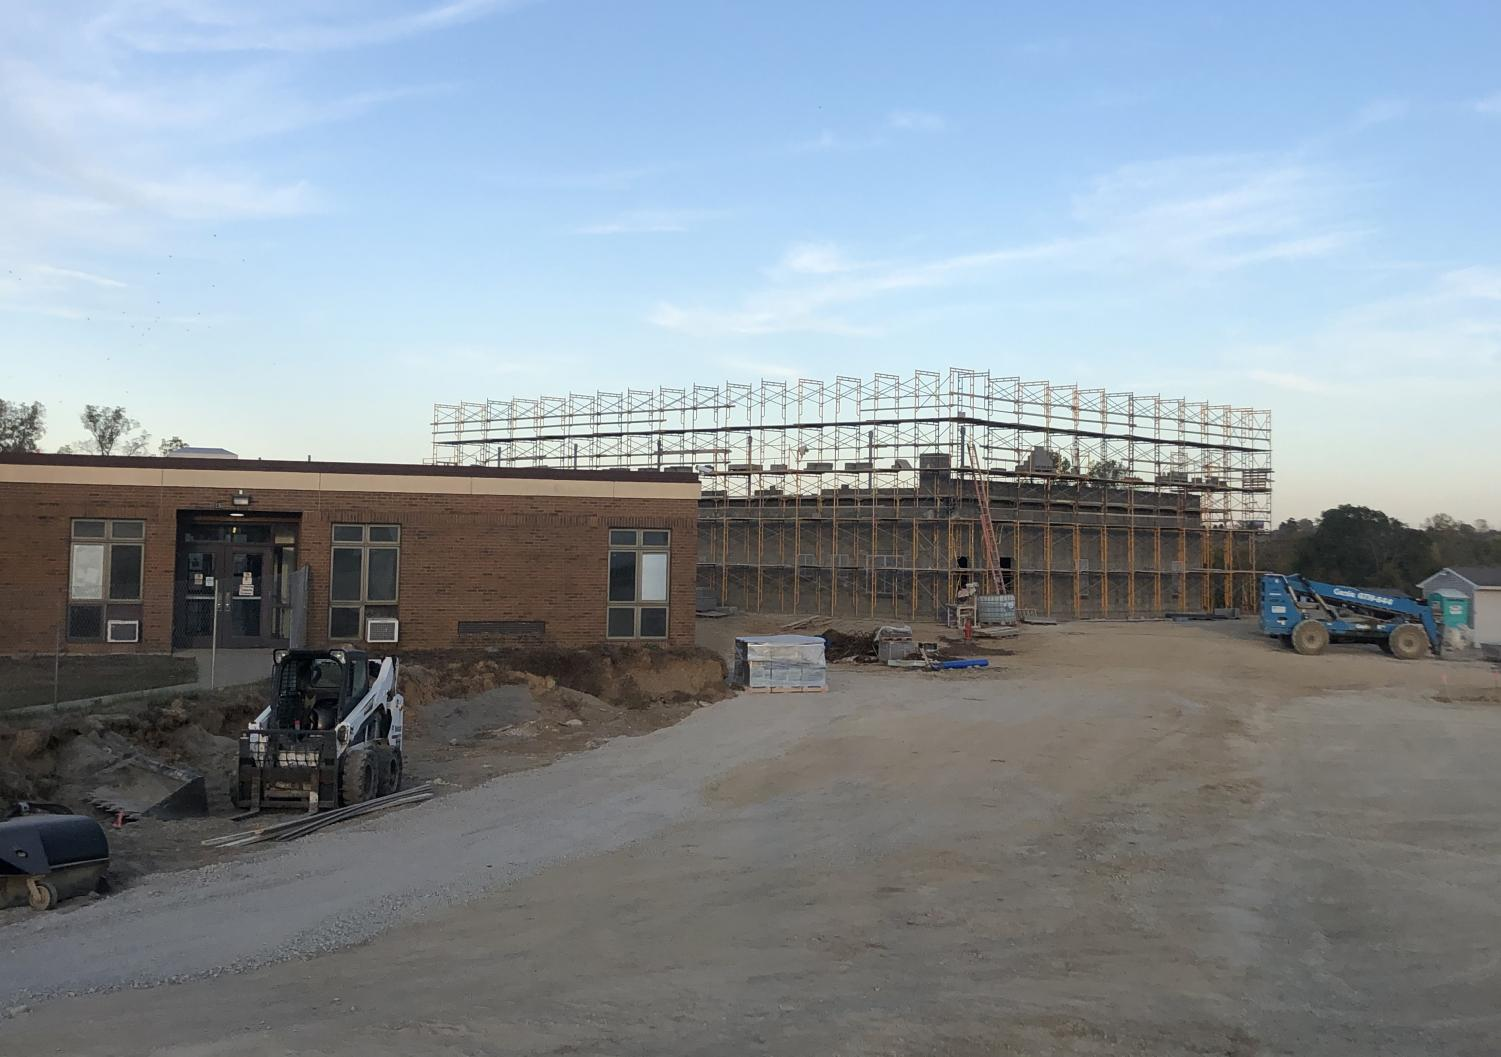 The new school is going up next to the old school, which is still in use